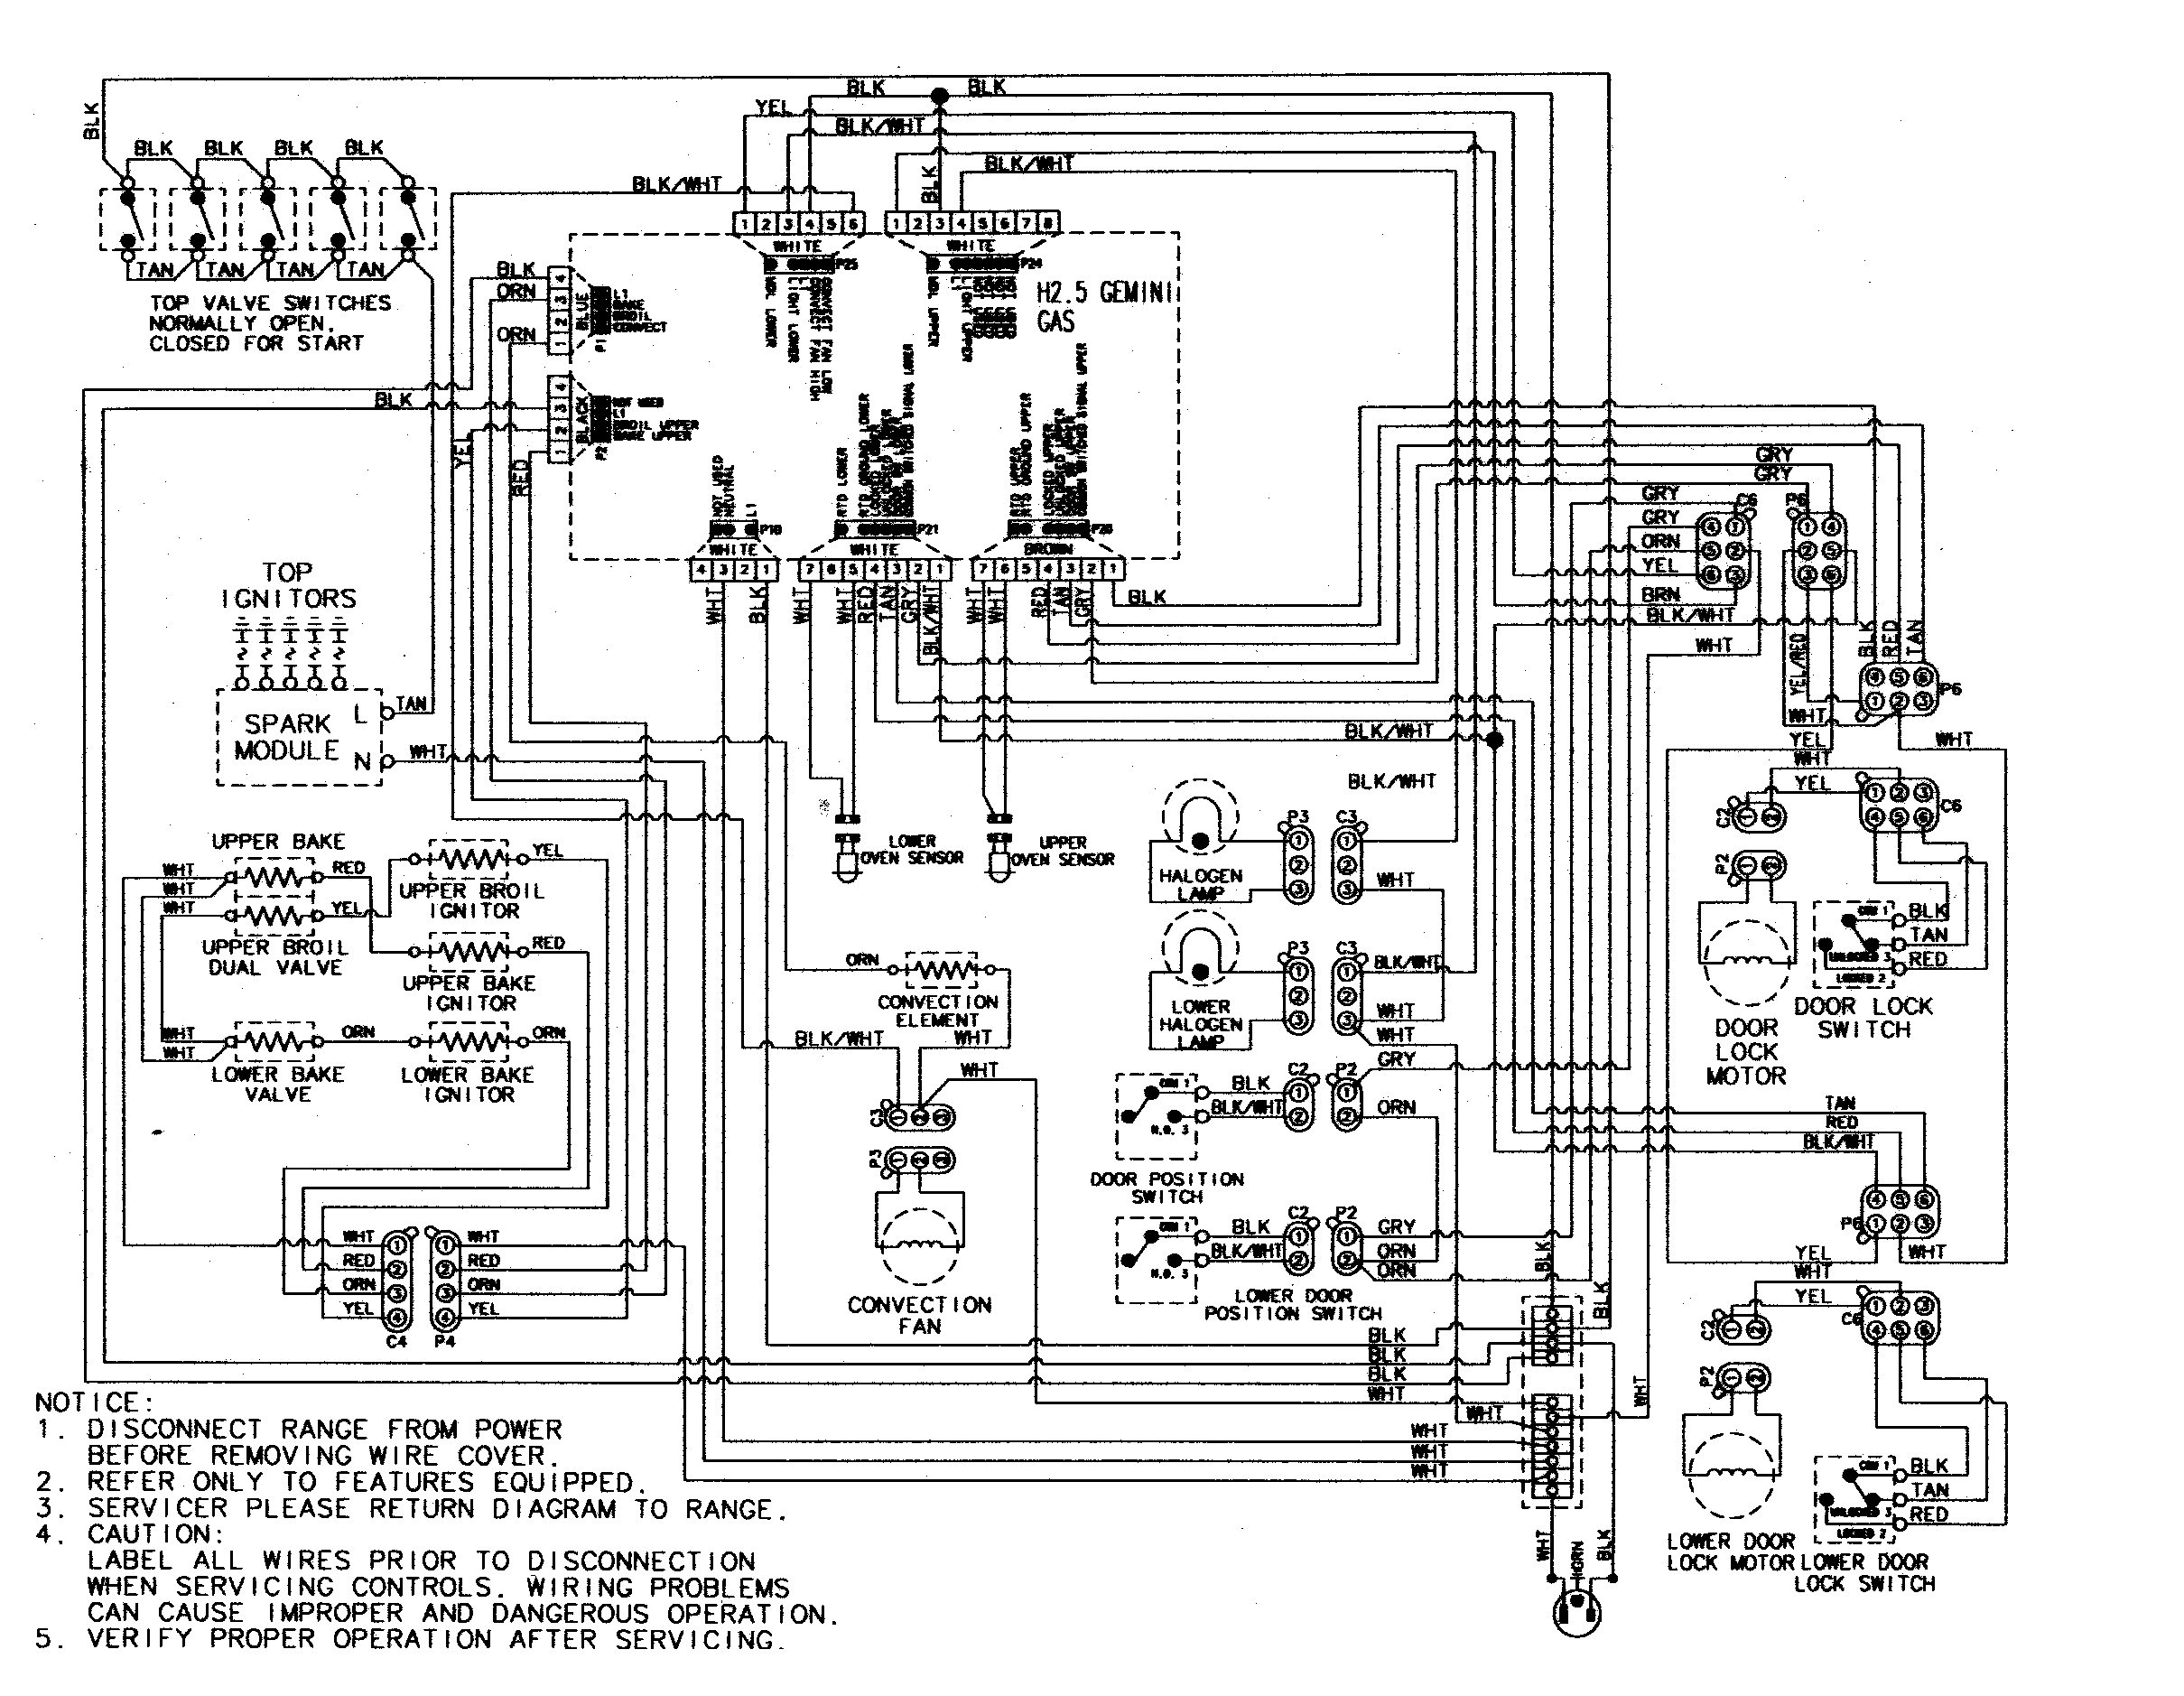 Maytag Dryer Plug Wiring Diagram | schematic diagram download on wiring diagram for samsung dryer, diagram maytag stackable washer dryer, wiring diagram for estate dryer, wiring diagram for amana dryer, wiring diagram for hotpoint dryer, wiring diagram for electrolux dryer, wiring diagram for clothes dryer, wiring diagram whirlpool dryer, wiring diagram kenmore dryer, wiring diagram for roper dryer, wiring diagram for dryer motor, wiring diagram for admiral dryer, wiring diagram for fisher paykel dryer, wiring diagram for frigidaire dryer, wiring diagram for speed queen dryer, wiring diagram for huebsch dryer, wiring diagram for sears dryer,